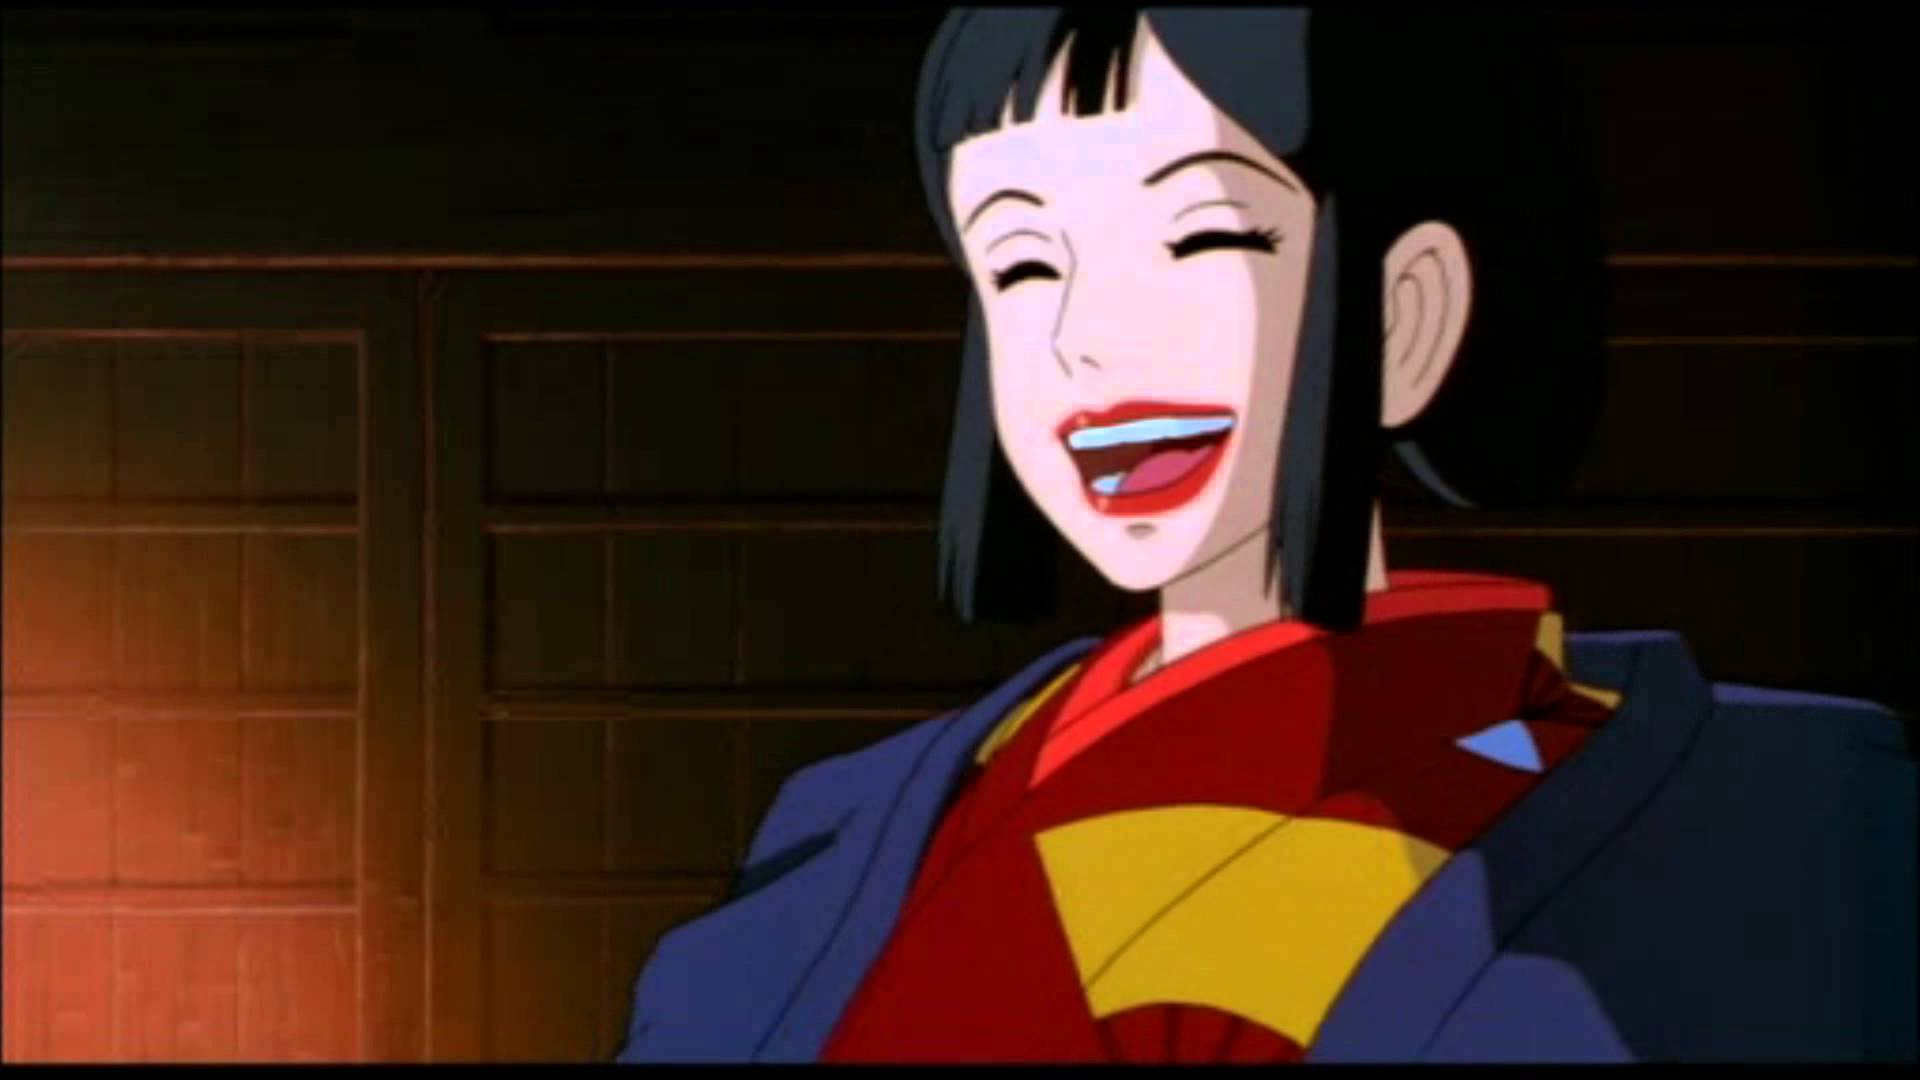 A dark-haired woman in traditional Japanese clothing laughs